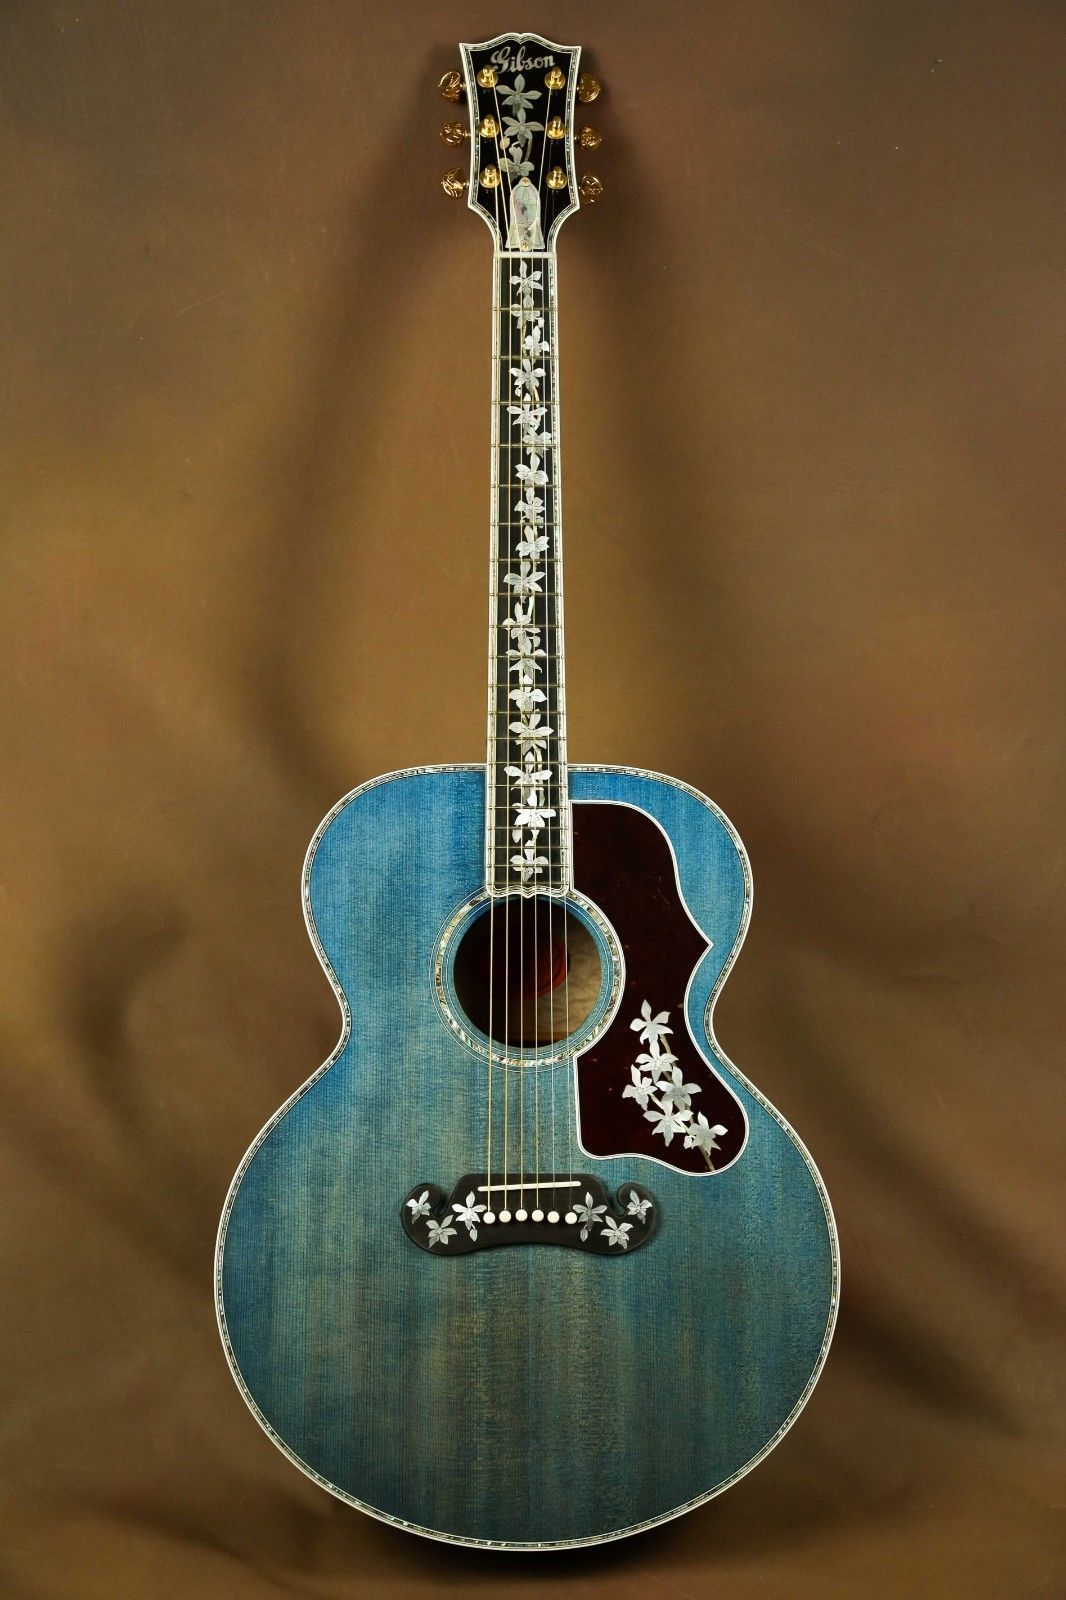 History Nt S4 Acoustic Guitar Ebay In 2020 Guitar Acoustic Guitar Acoustic